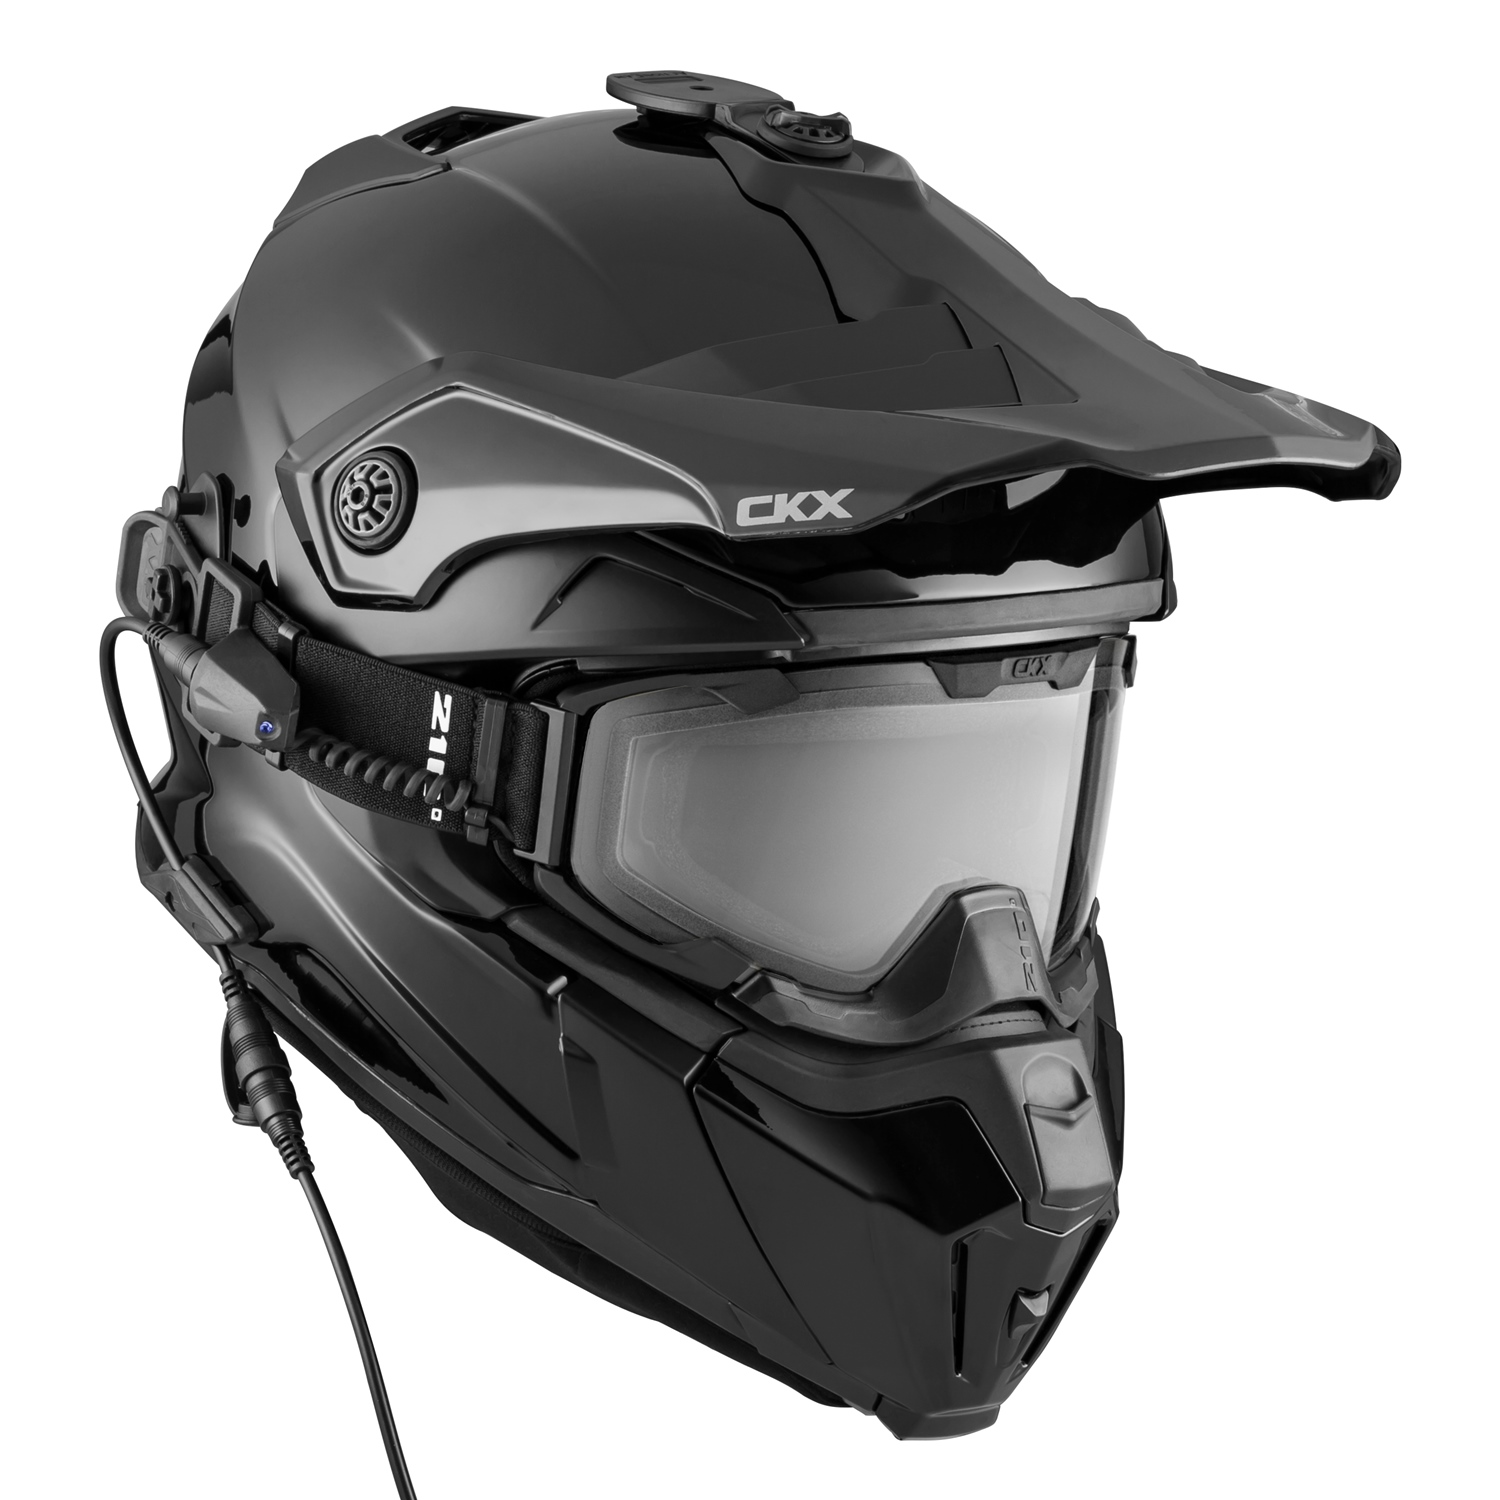 21a442c1702 CKX Titan Electric Original Backcountry Helmet